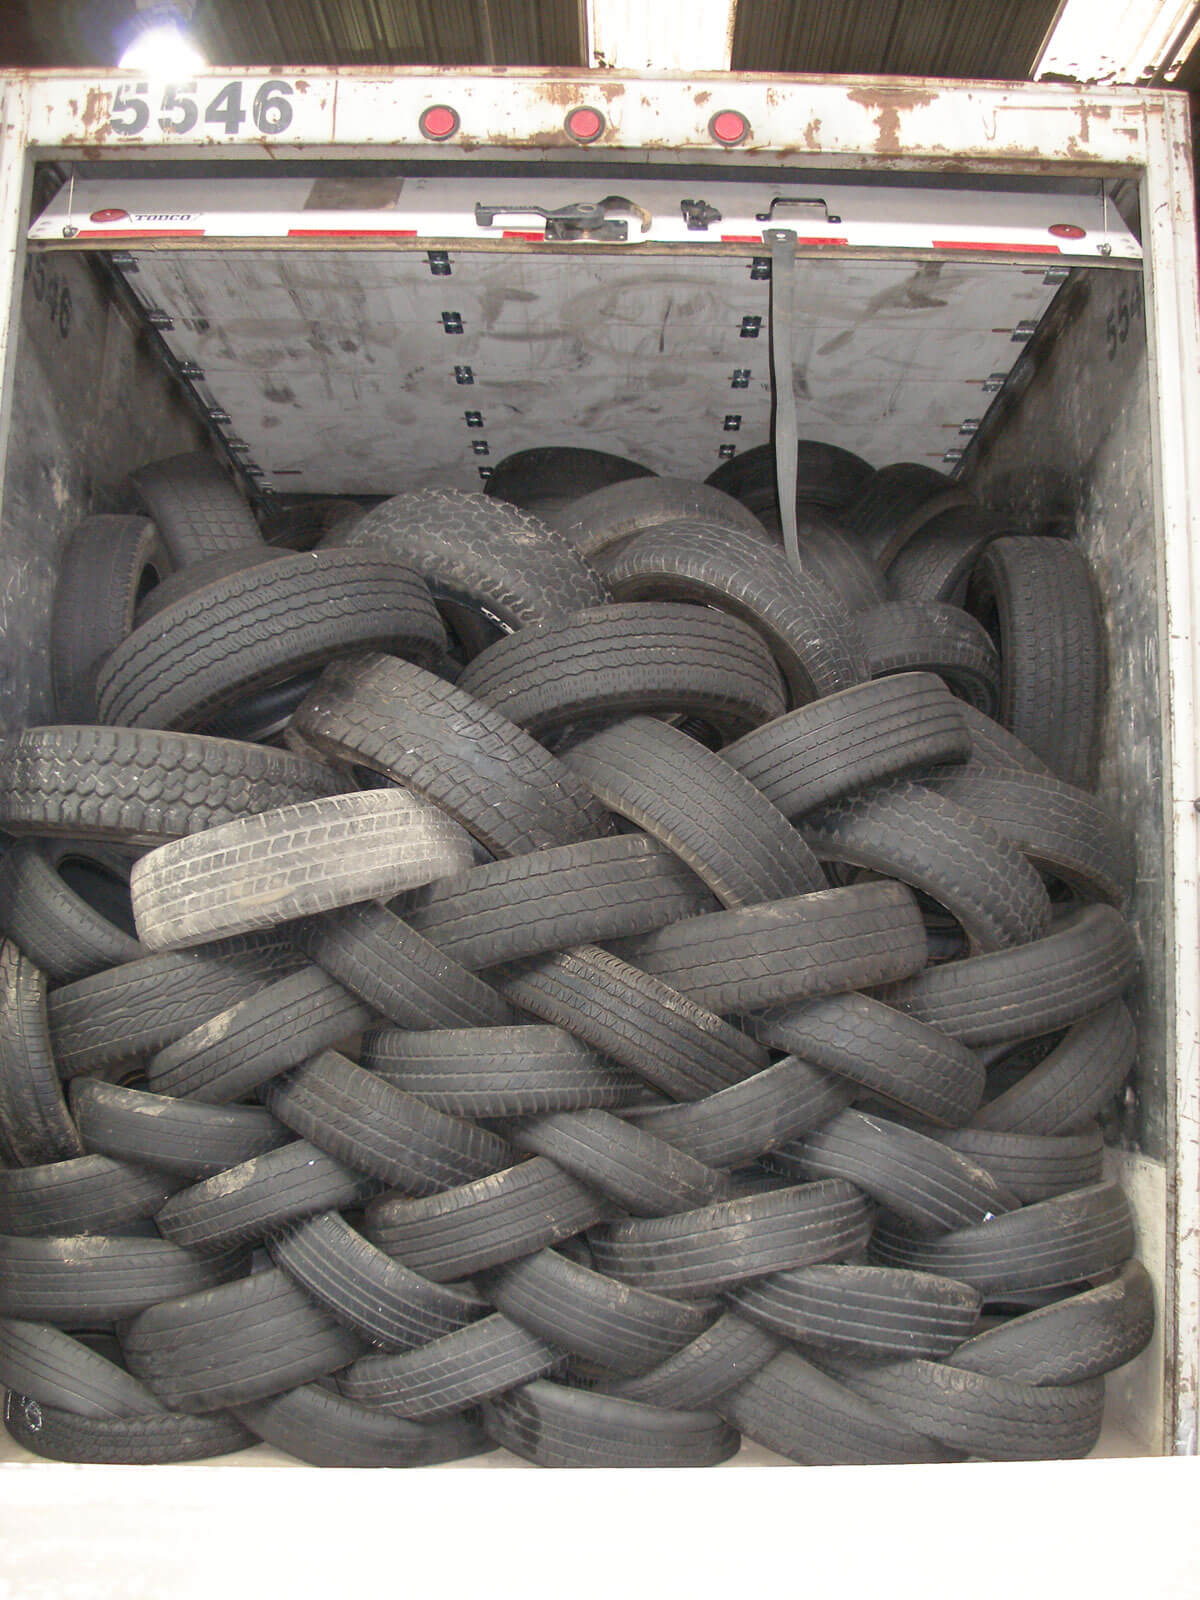 Laced Tires In Trailer